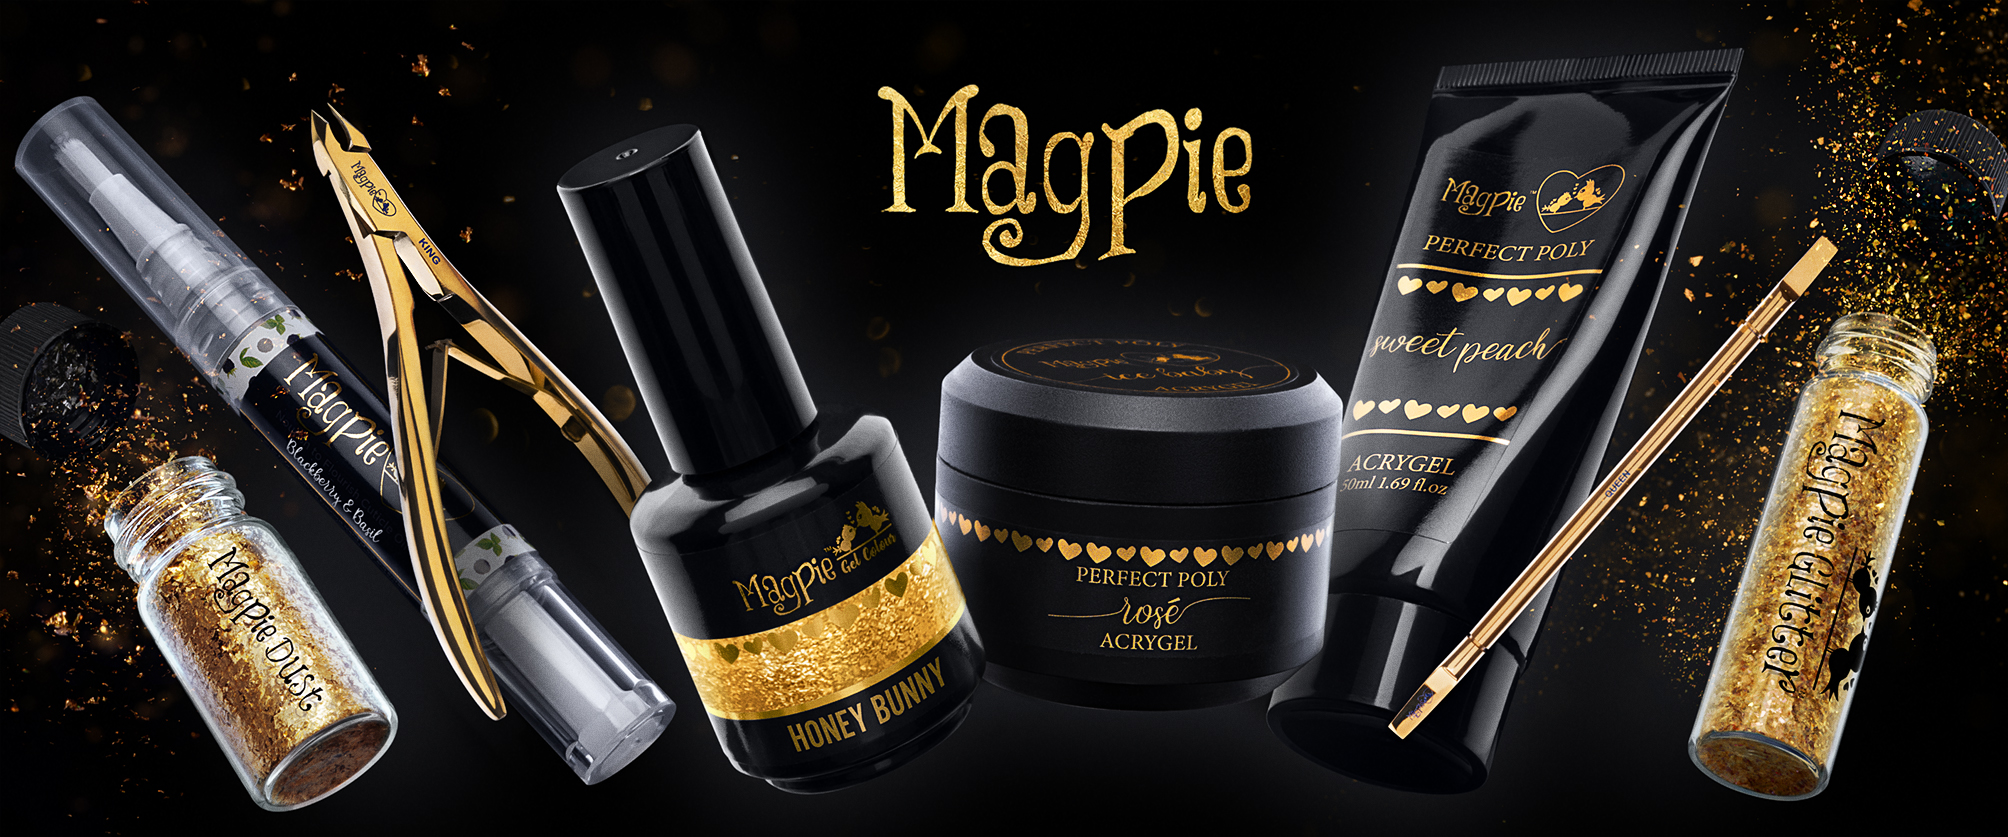 Magpie Products - Honey Bunny, Perfect Poly Acrygel, Sweet Peach Acrygel, Blackberry and basil